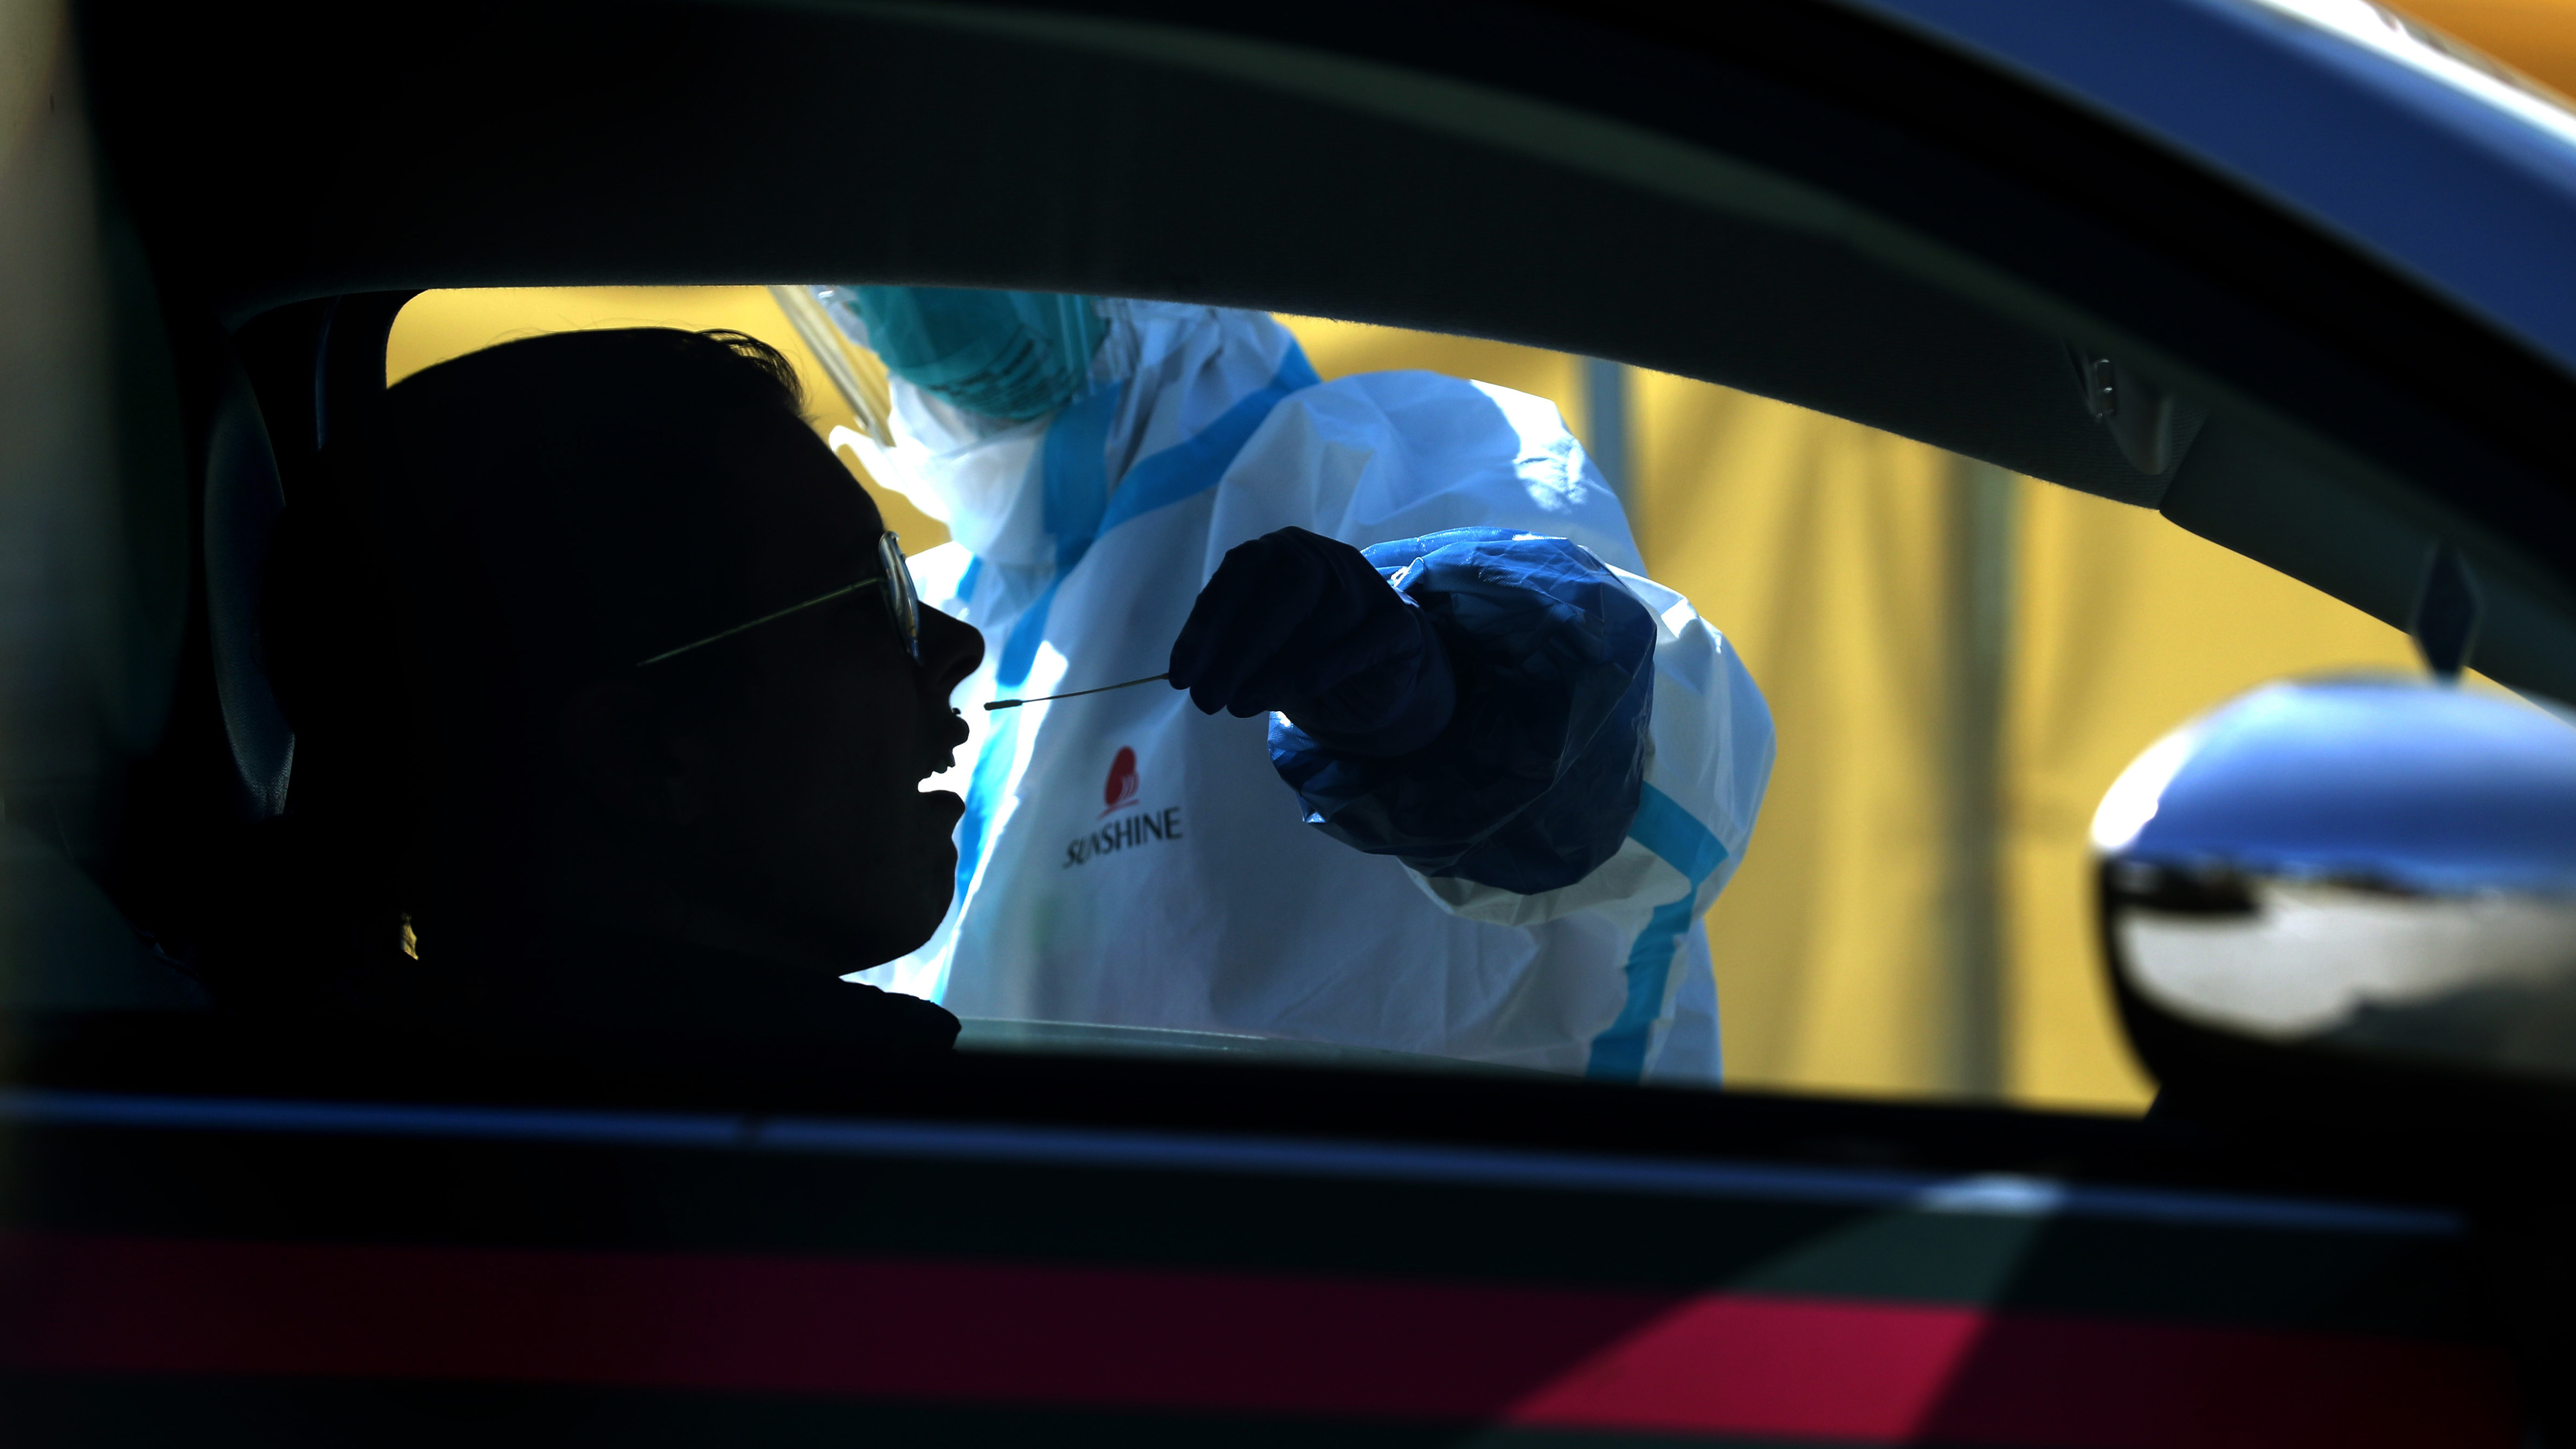 A motorist gets a drive-through coronavirus test Thursday in Daly City, Calif. The U.S. has surpassed China to have the world's largest number of coronavirus cases.